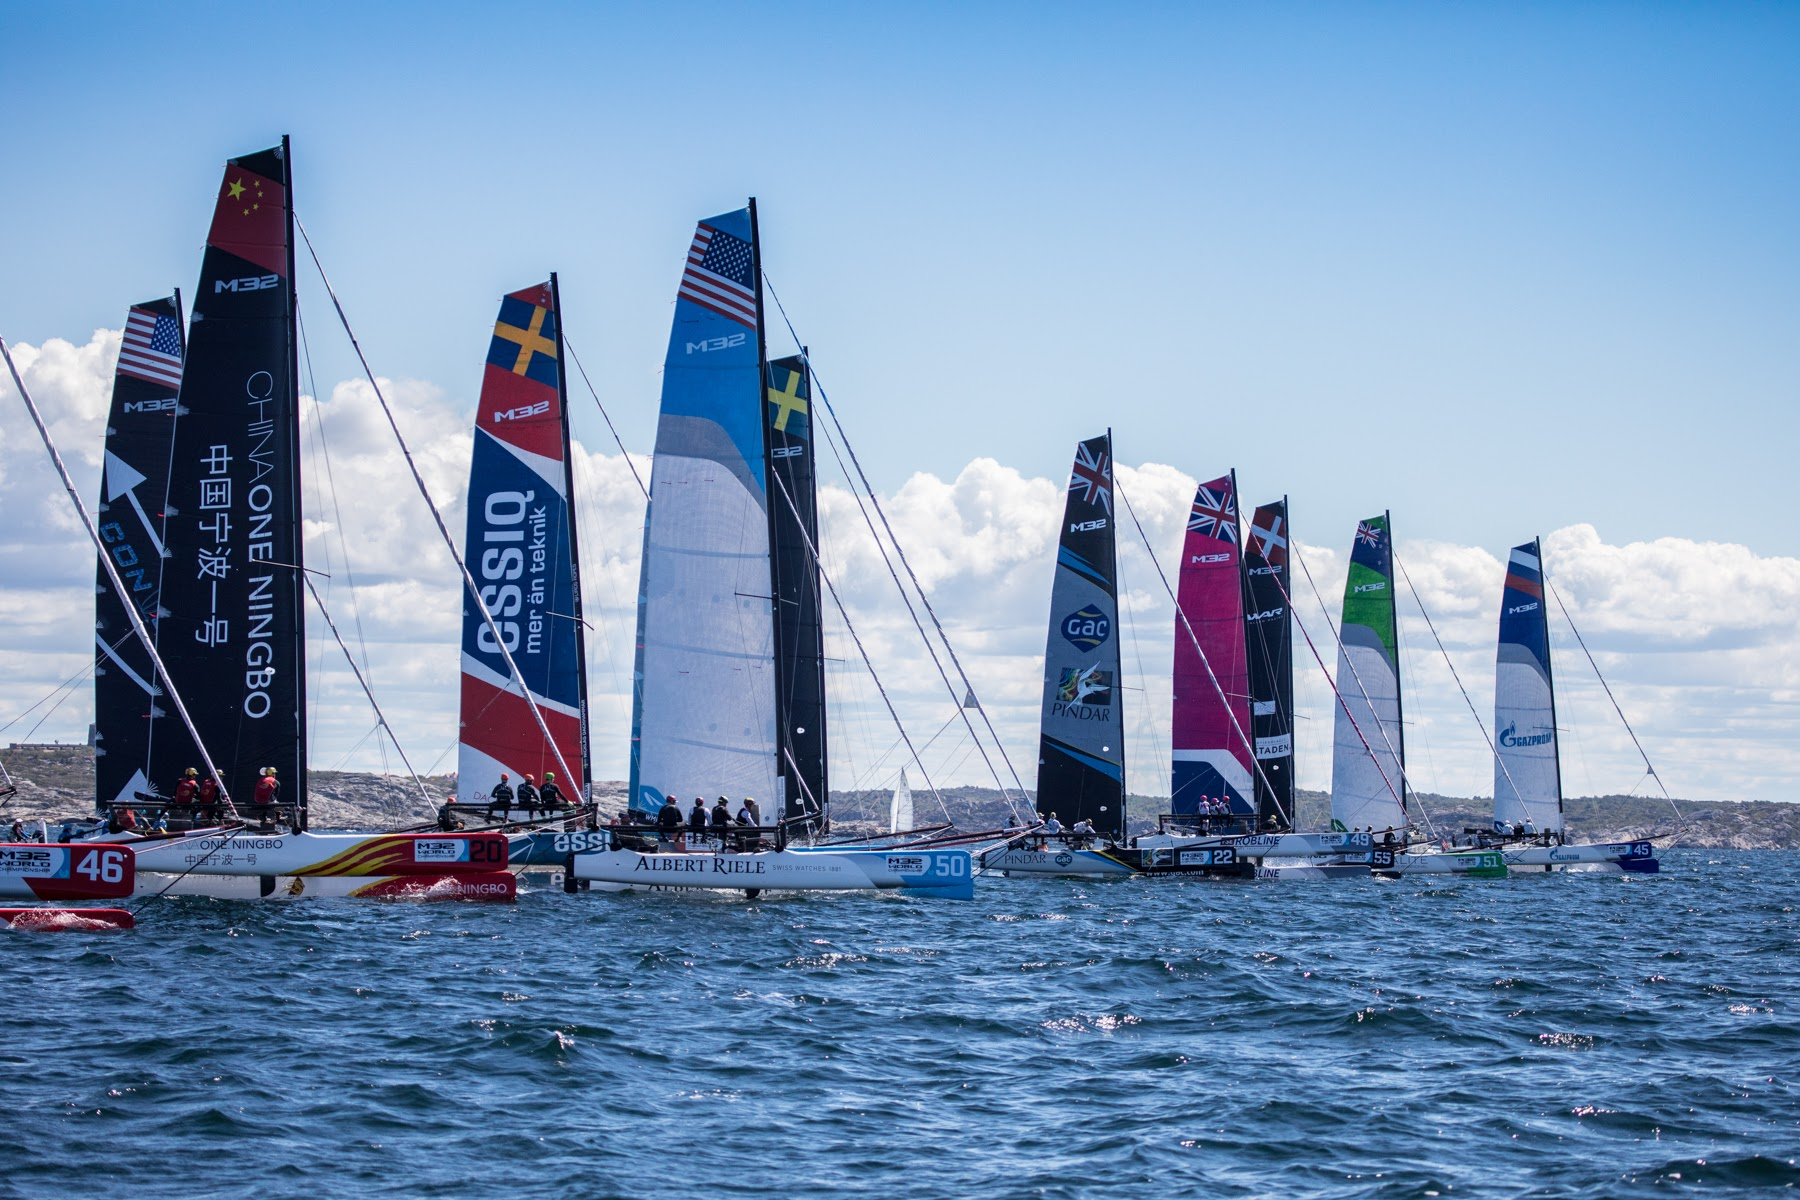 Steele and Postma duel for first day bragging rights at M32 World Championship